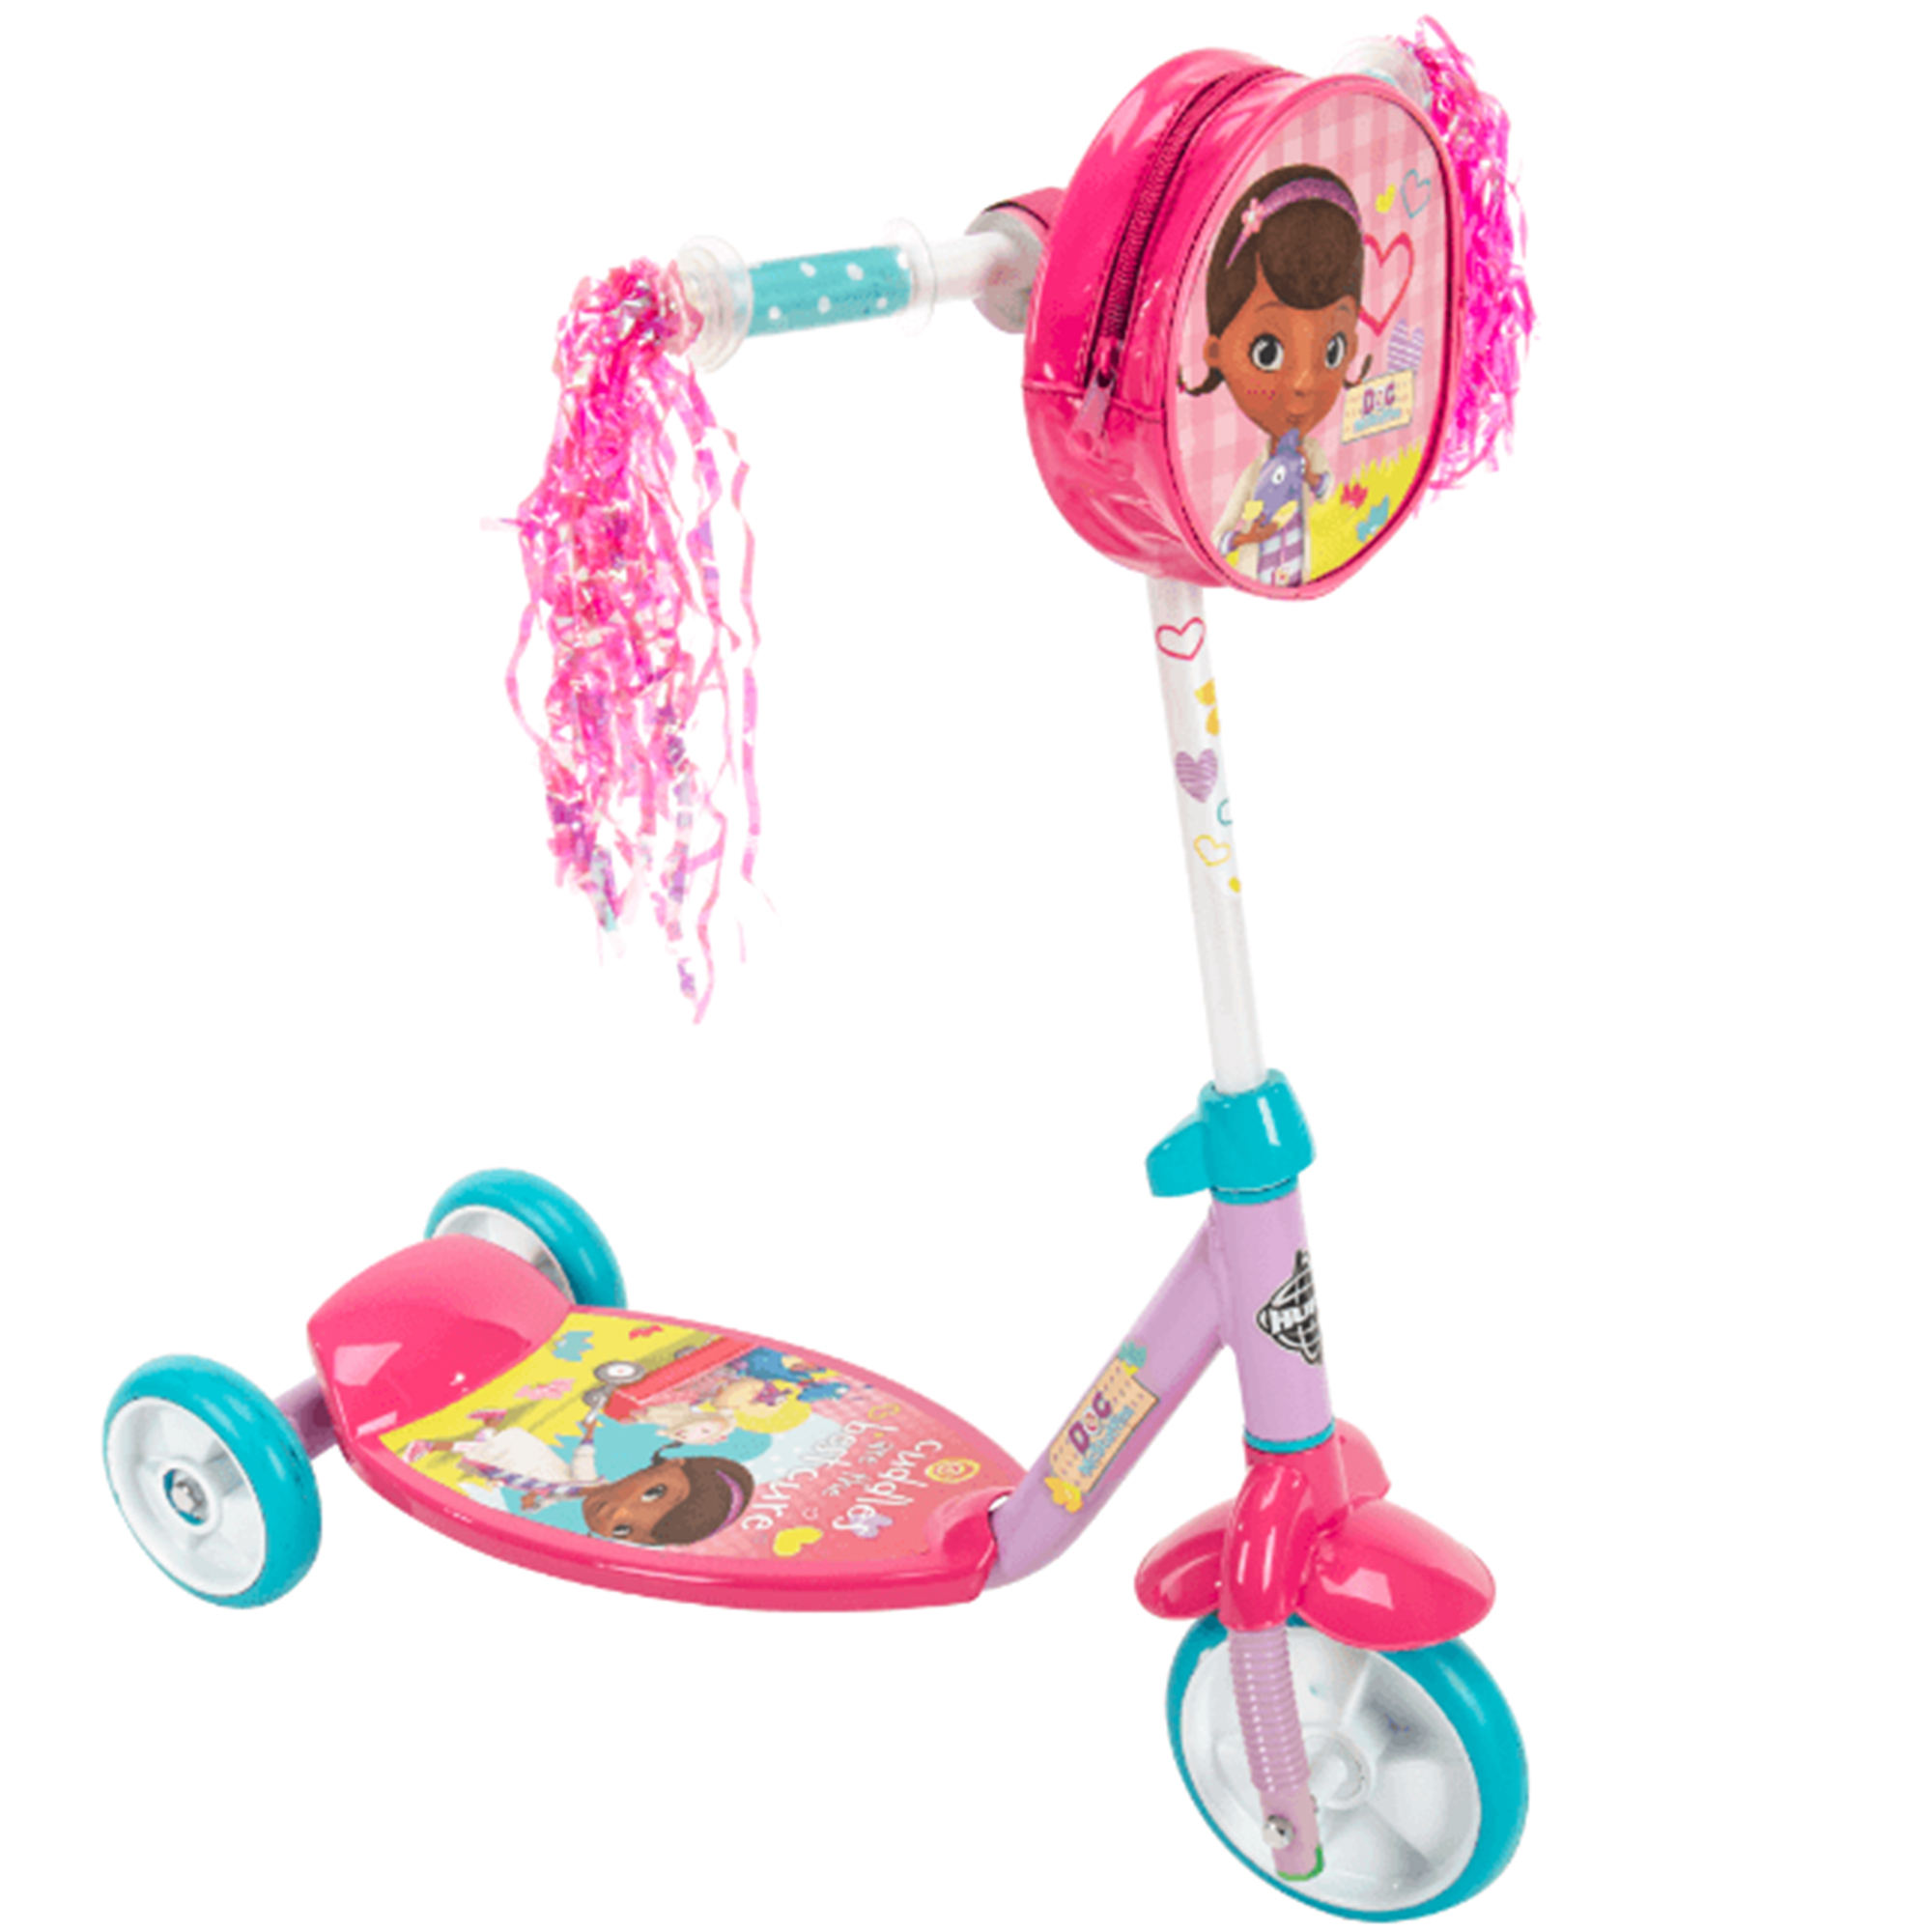 Disney Doc McStuffins Preschool Girls' 3-Wheel Scooter, by Huffy